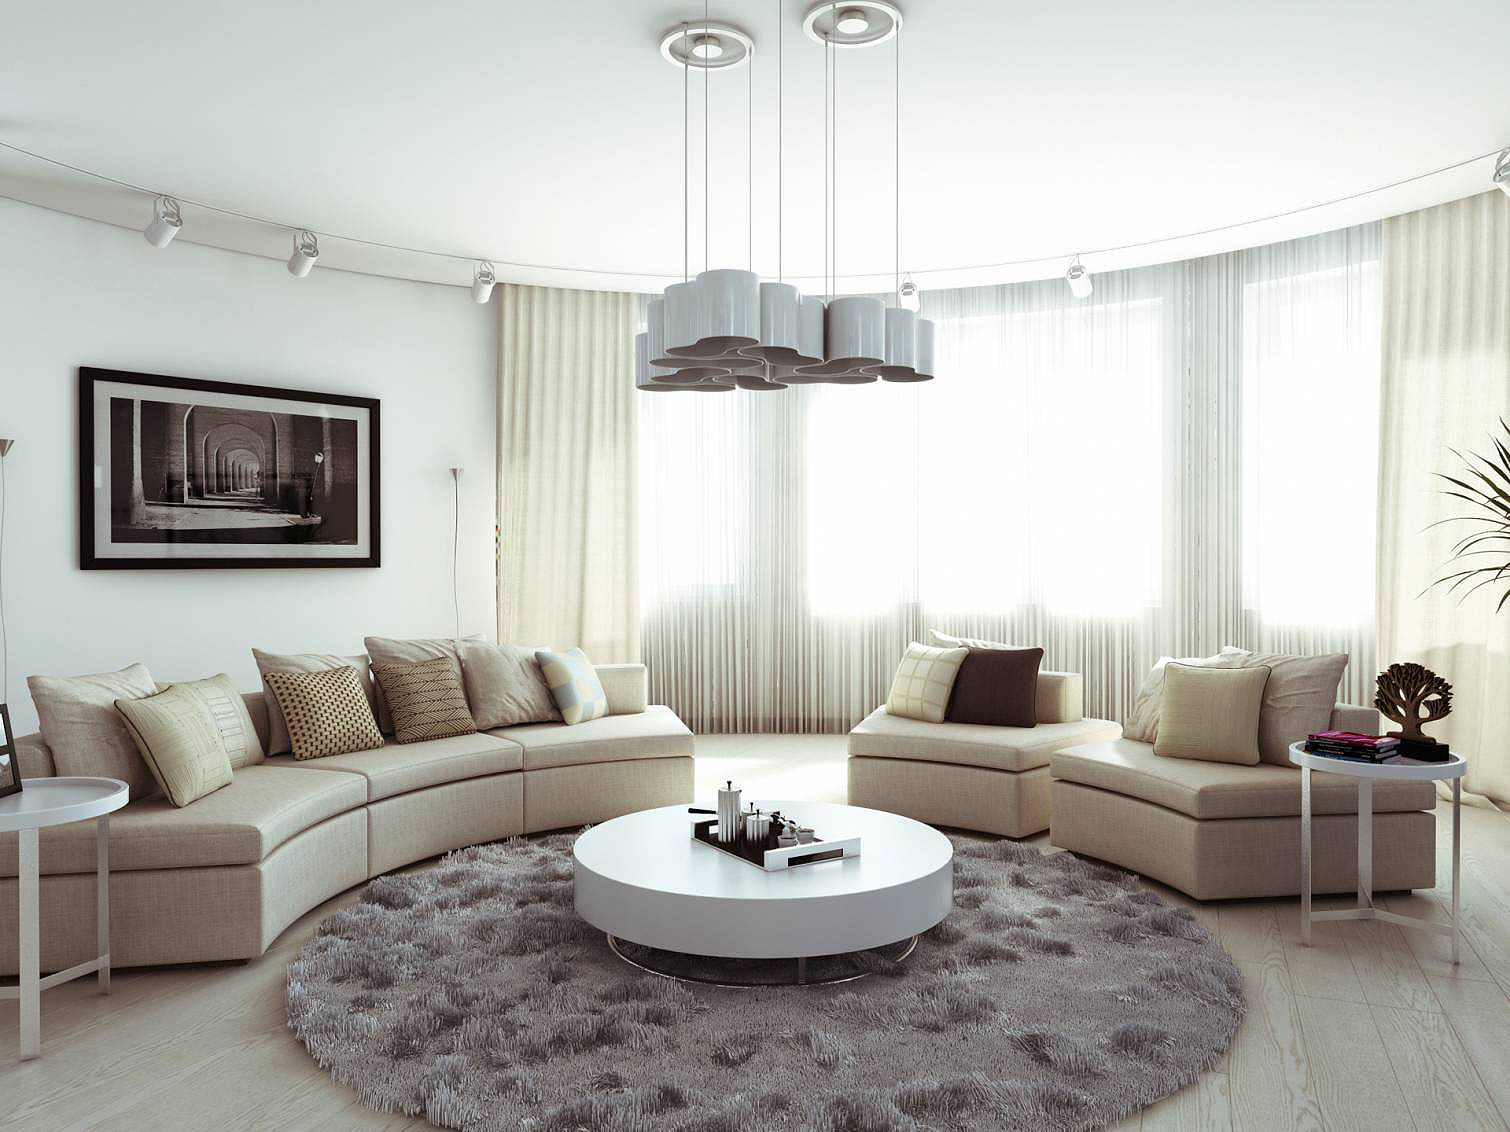 """Apartment Design in """"Moskovyan Plaza"""" by ITHAKA-Architecture and Design"""